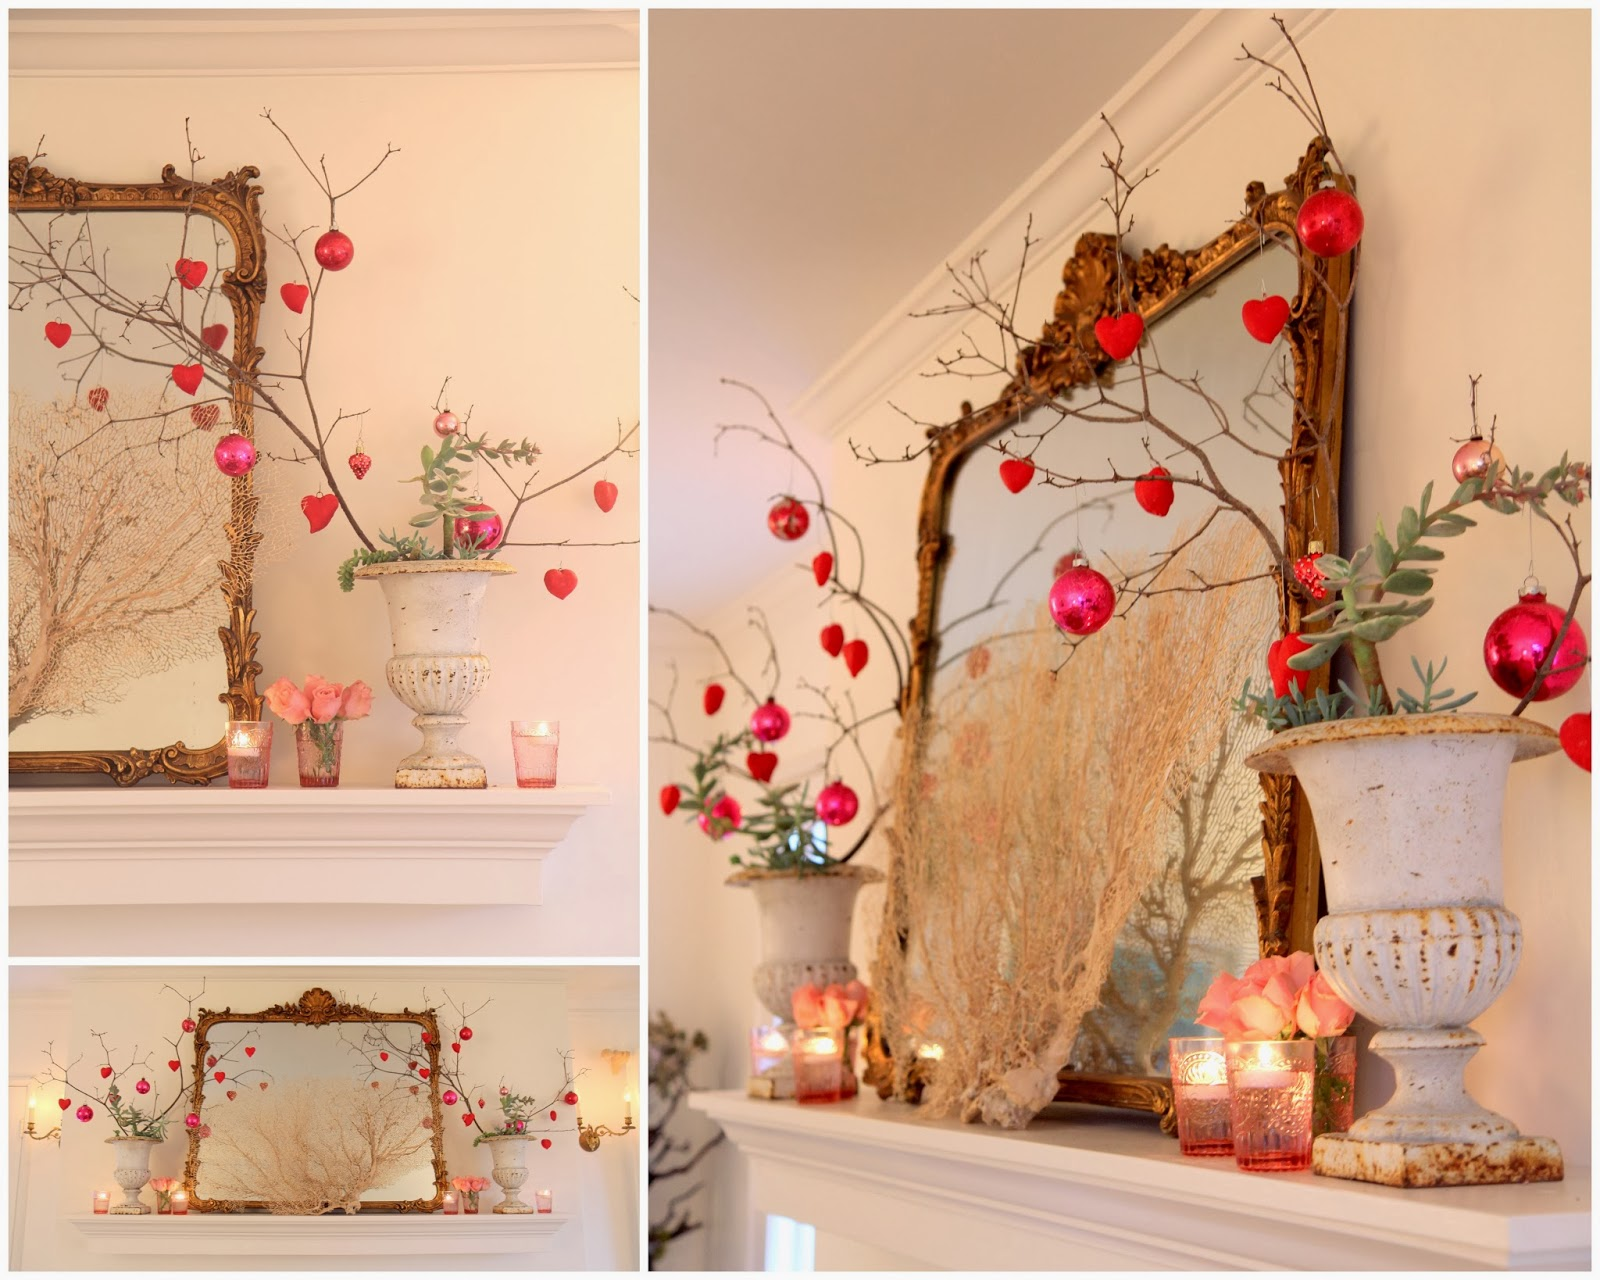 Red Heart Ornaments for Valentine's Day Mantle Decor